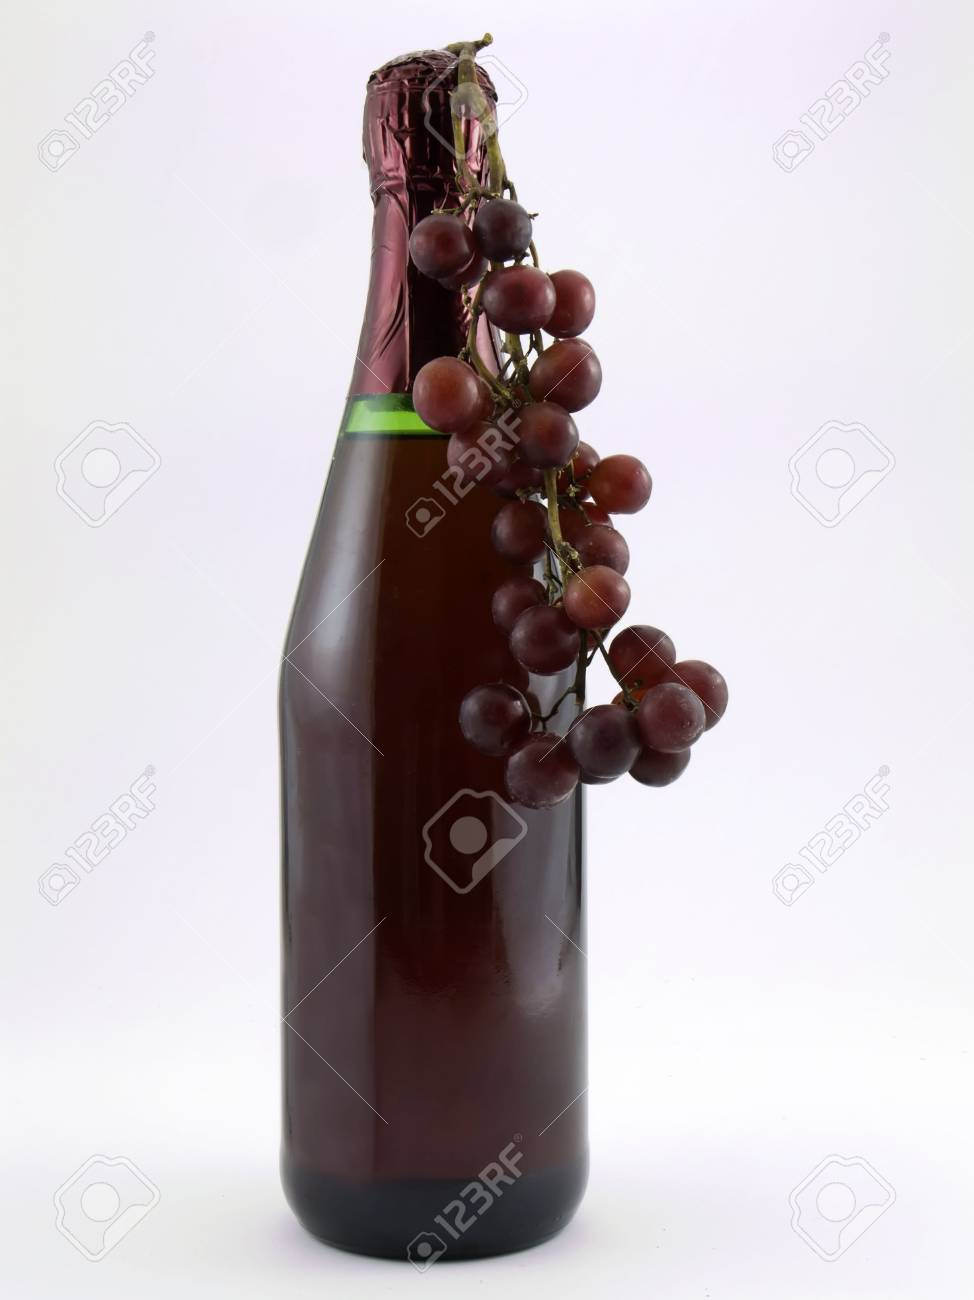 Photo of a wine bottle with red grapes hanging from it Stock Photo - 699956